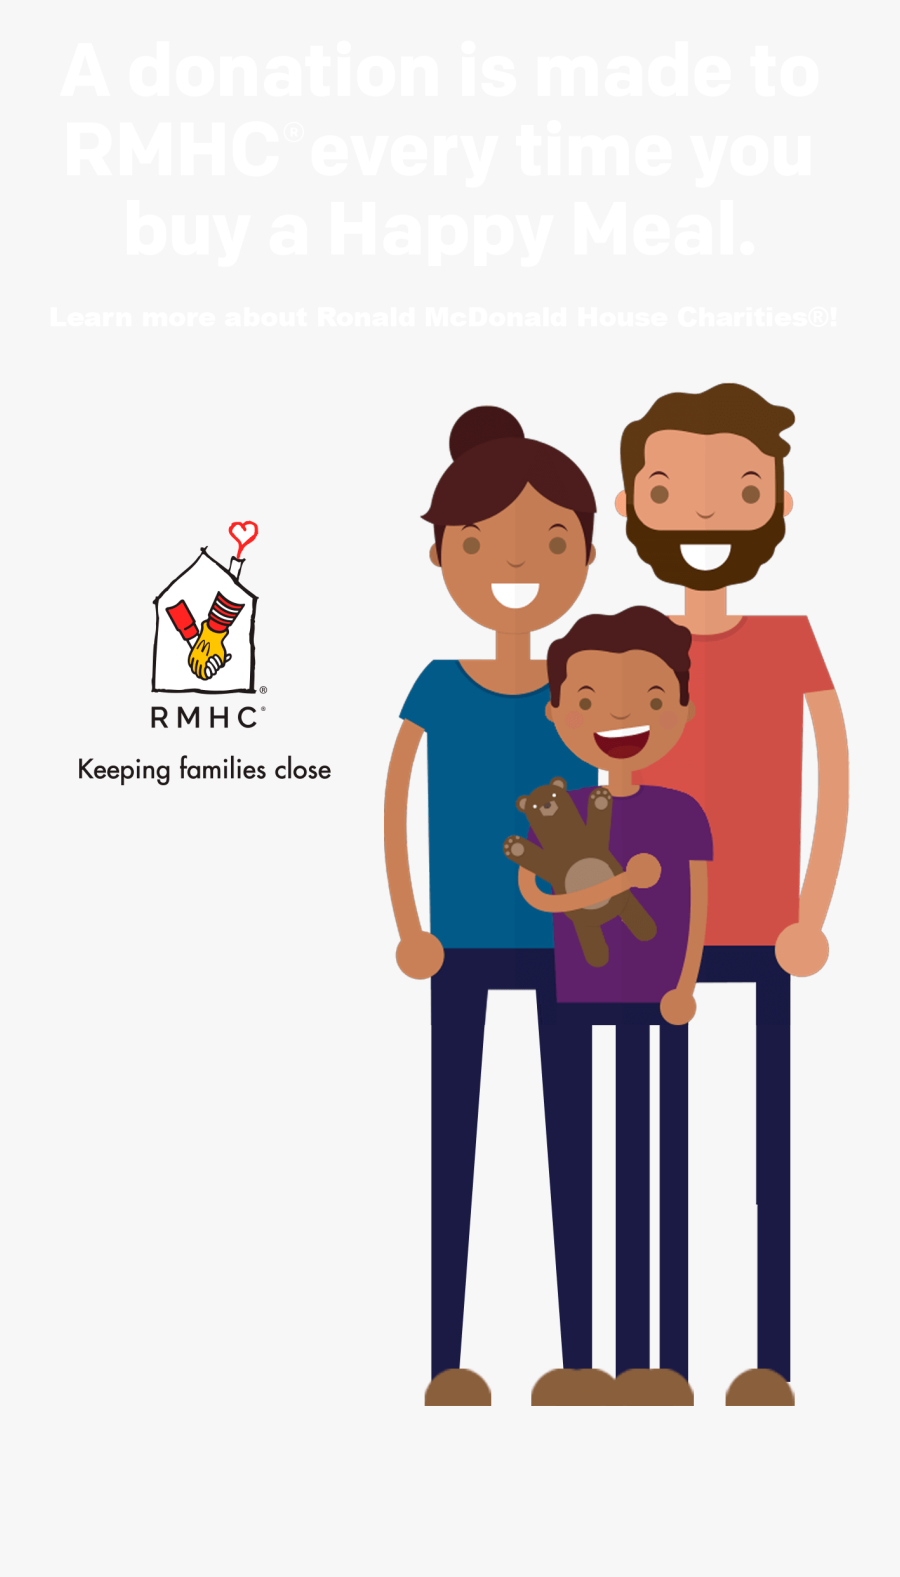 A Donation Is Made To Rmhc Every Time You Buy A Happy - Family Icons Cartoon Transparent Background, Transparent Clipart